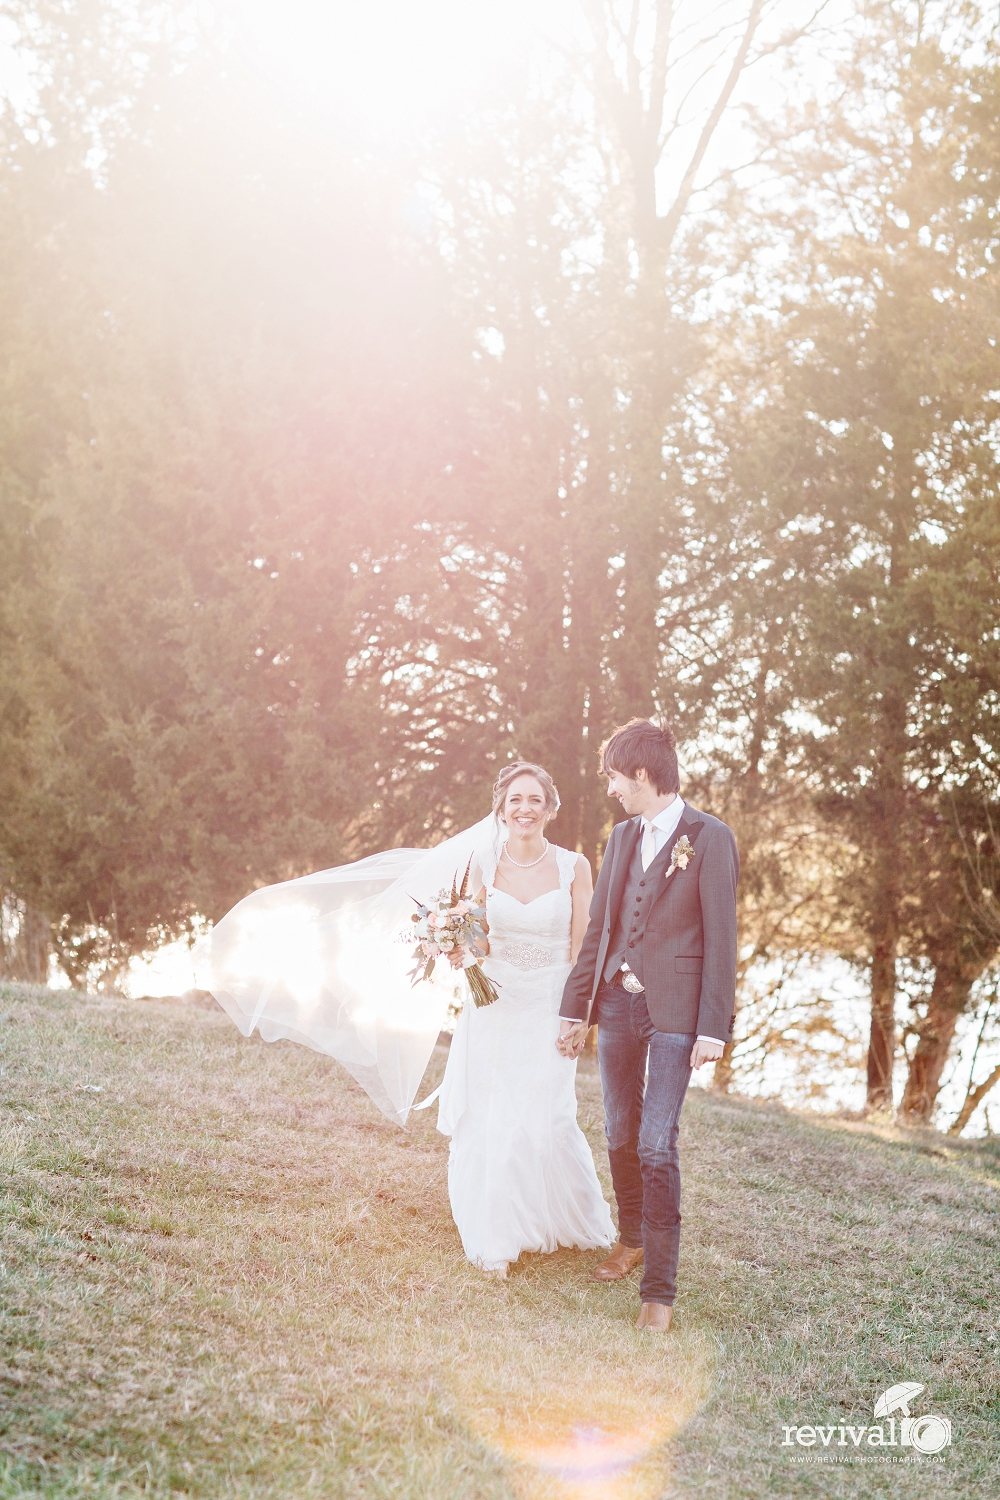 Emily + Mo Pitney's Wedding Day Photography by Revival Photography NC Wedding Photographers www.revivalphotography.com